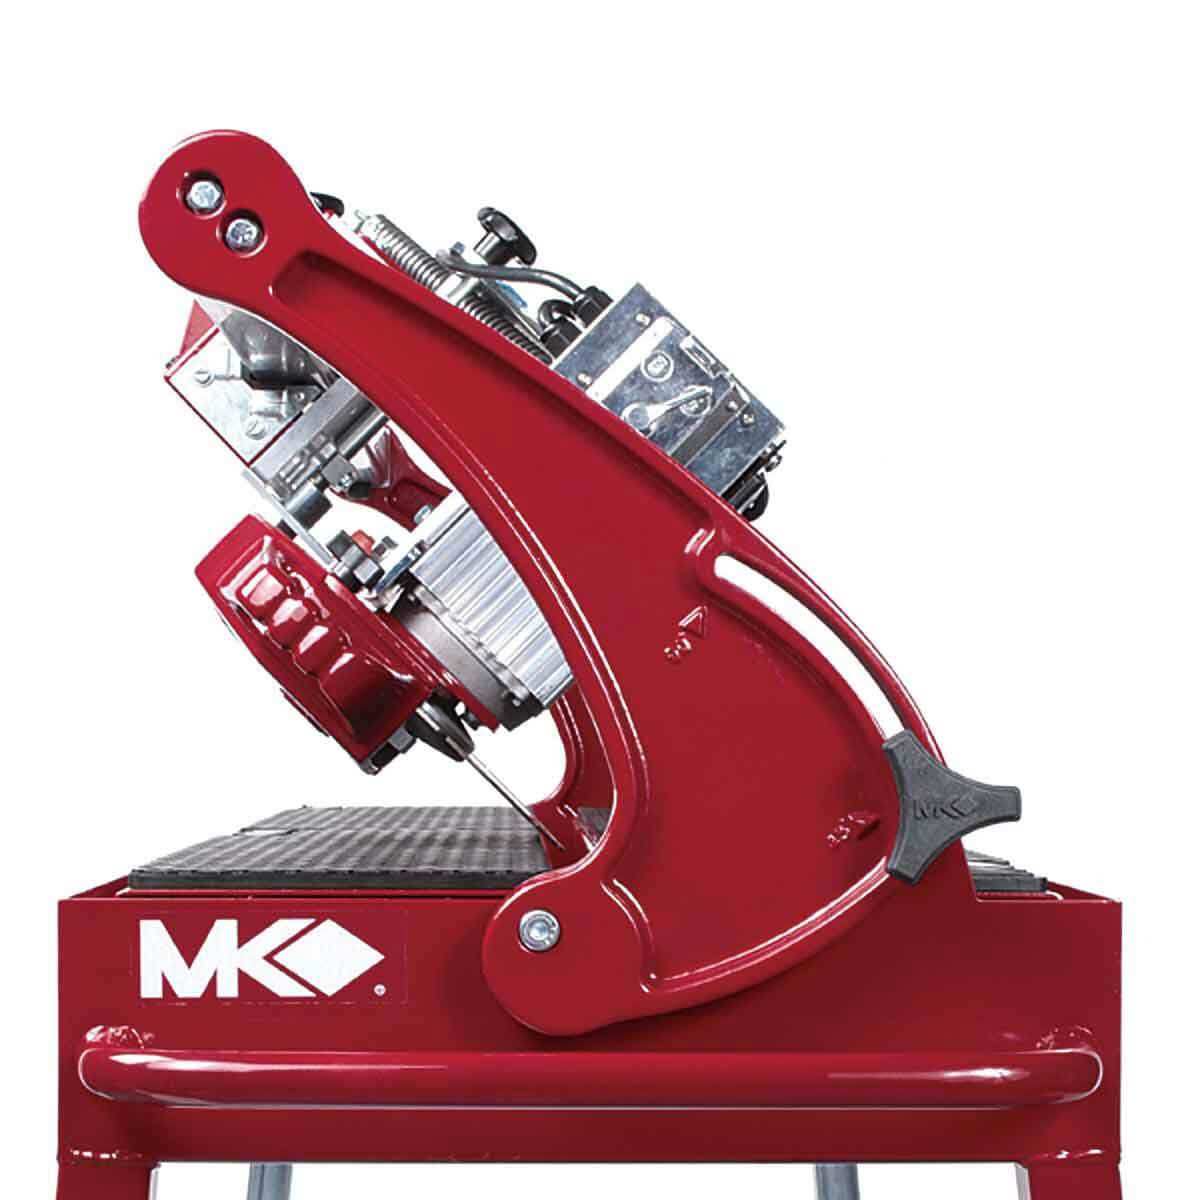 MK Diamond rail saw 45 degree cutting capability